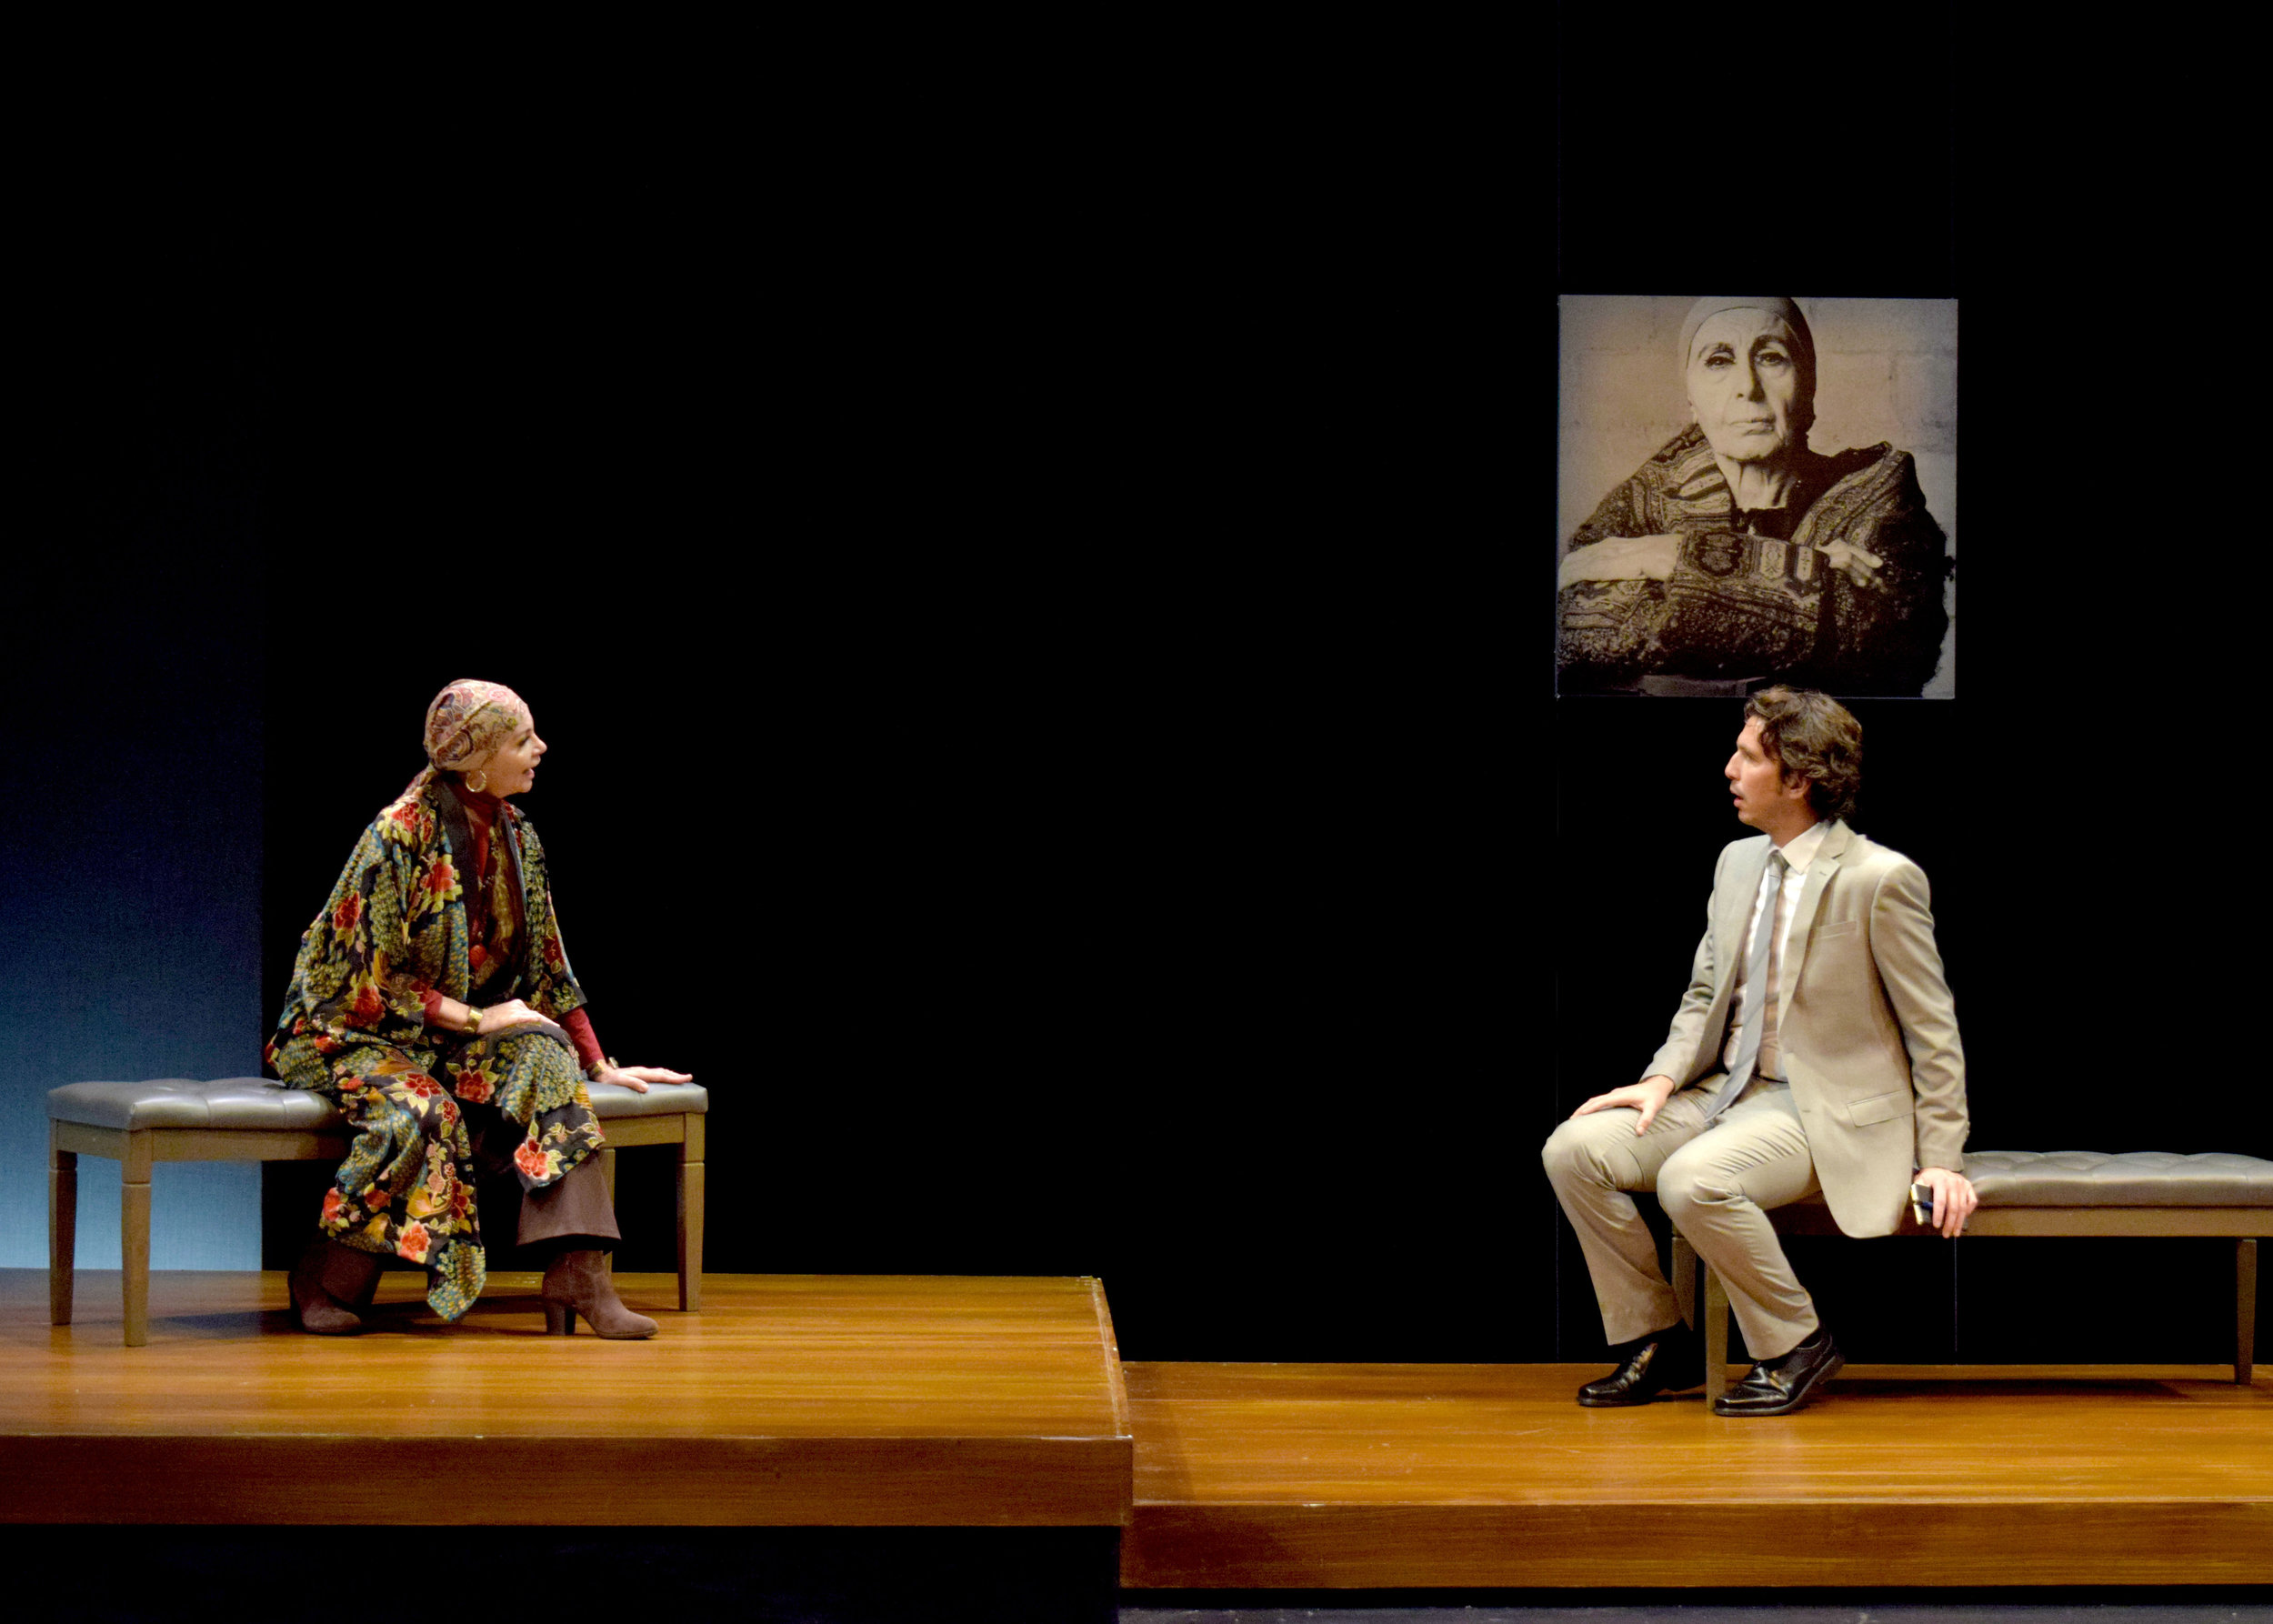 Martha Hackett and James Liebman in the west coast premiere of Edward Albee's Occupant at the Garry Marshall Theatre. Photo by Chelsea Sutton.